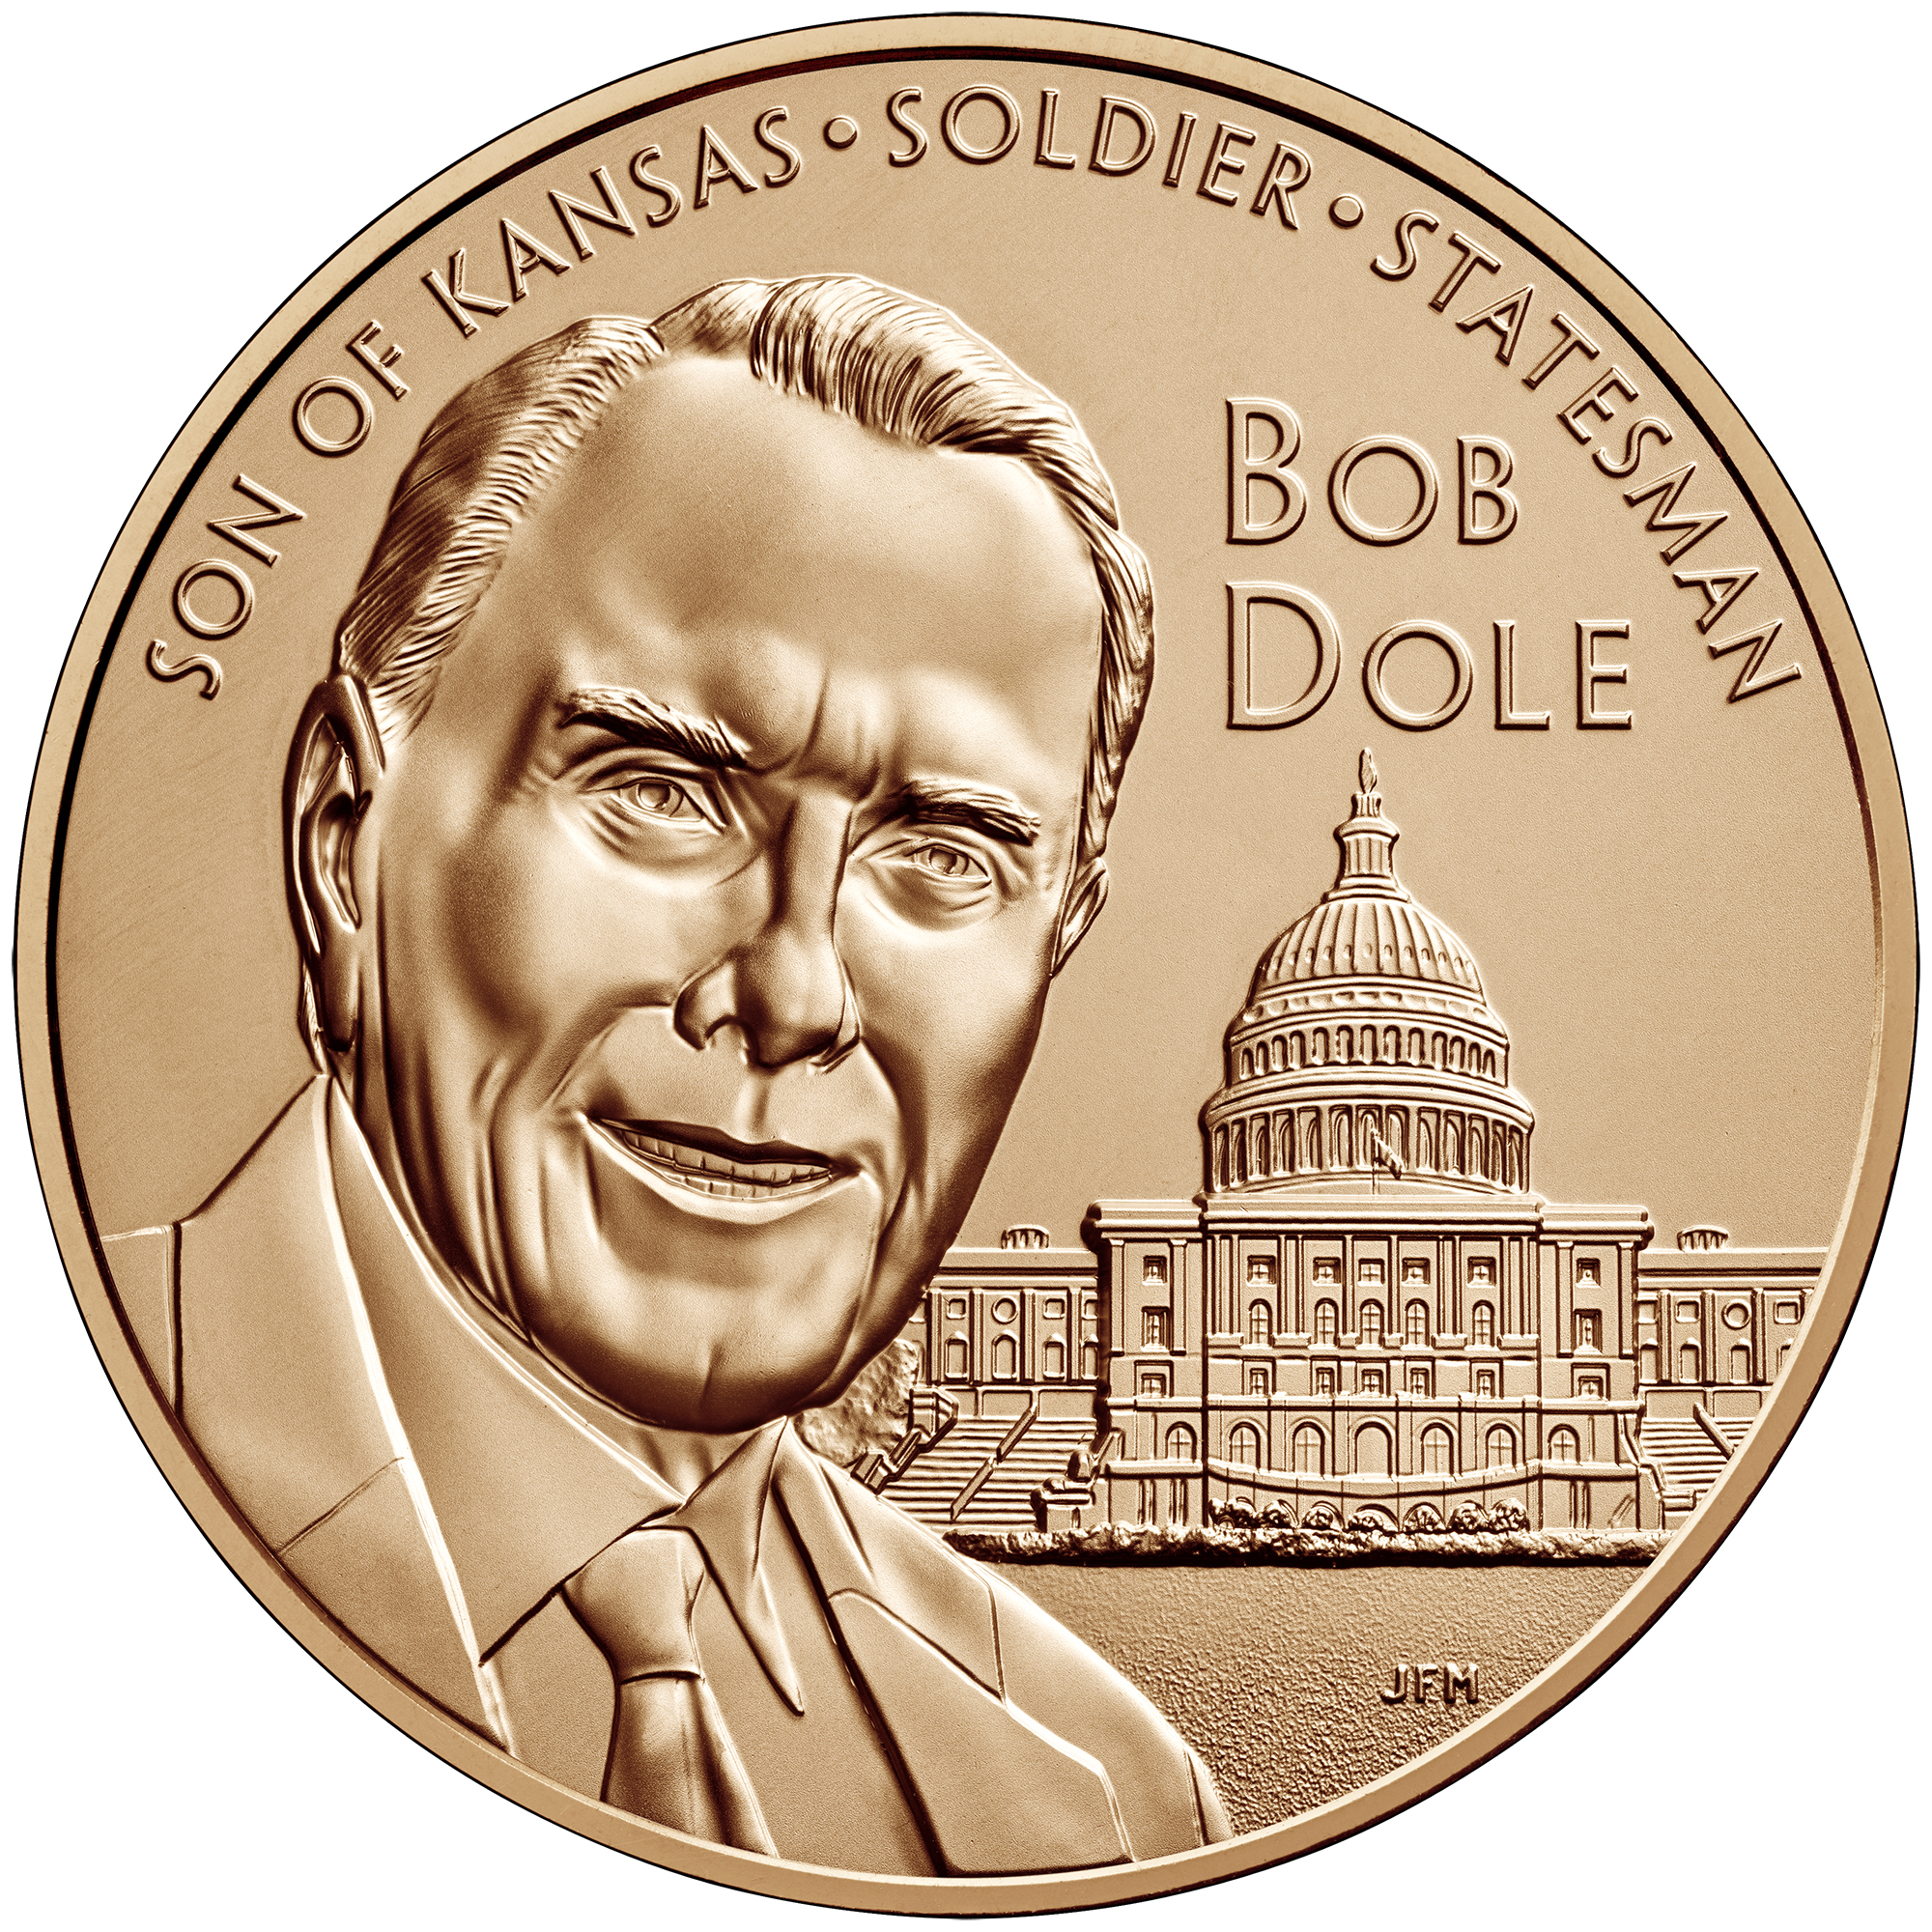 2017 Bob Dole Bronze Medal One and One-Half Inch Obverse